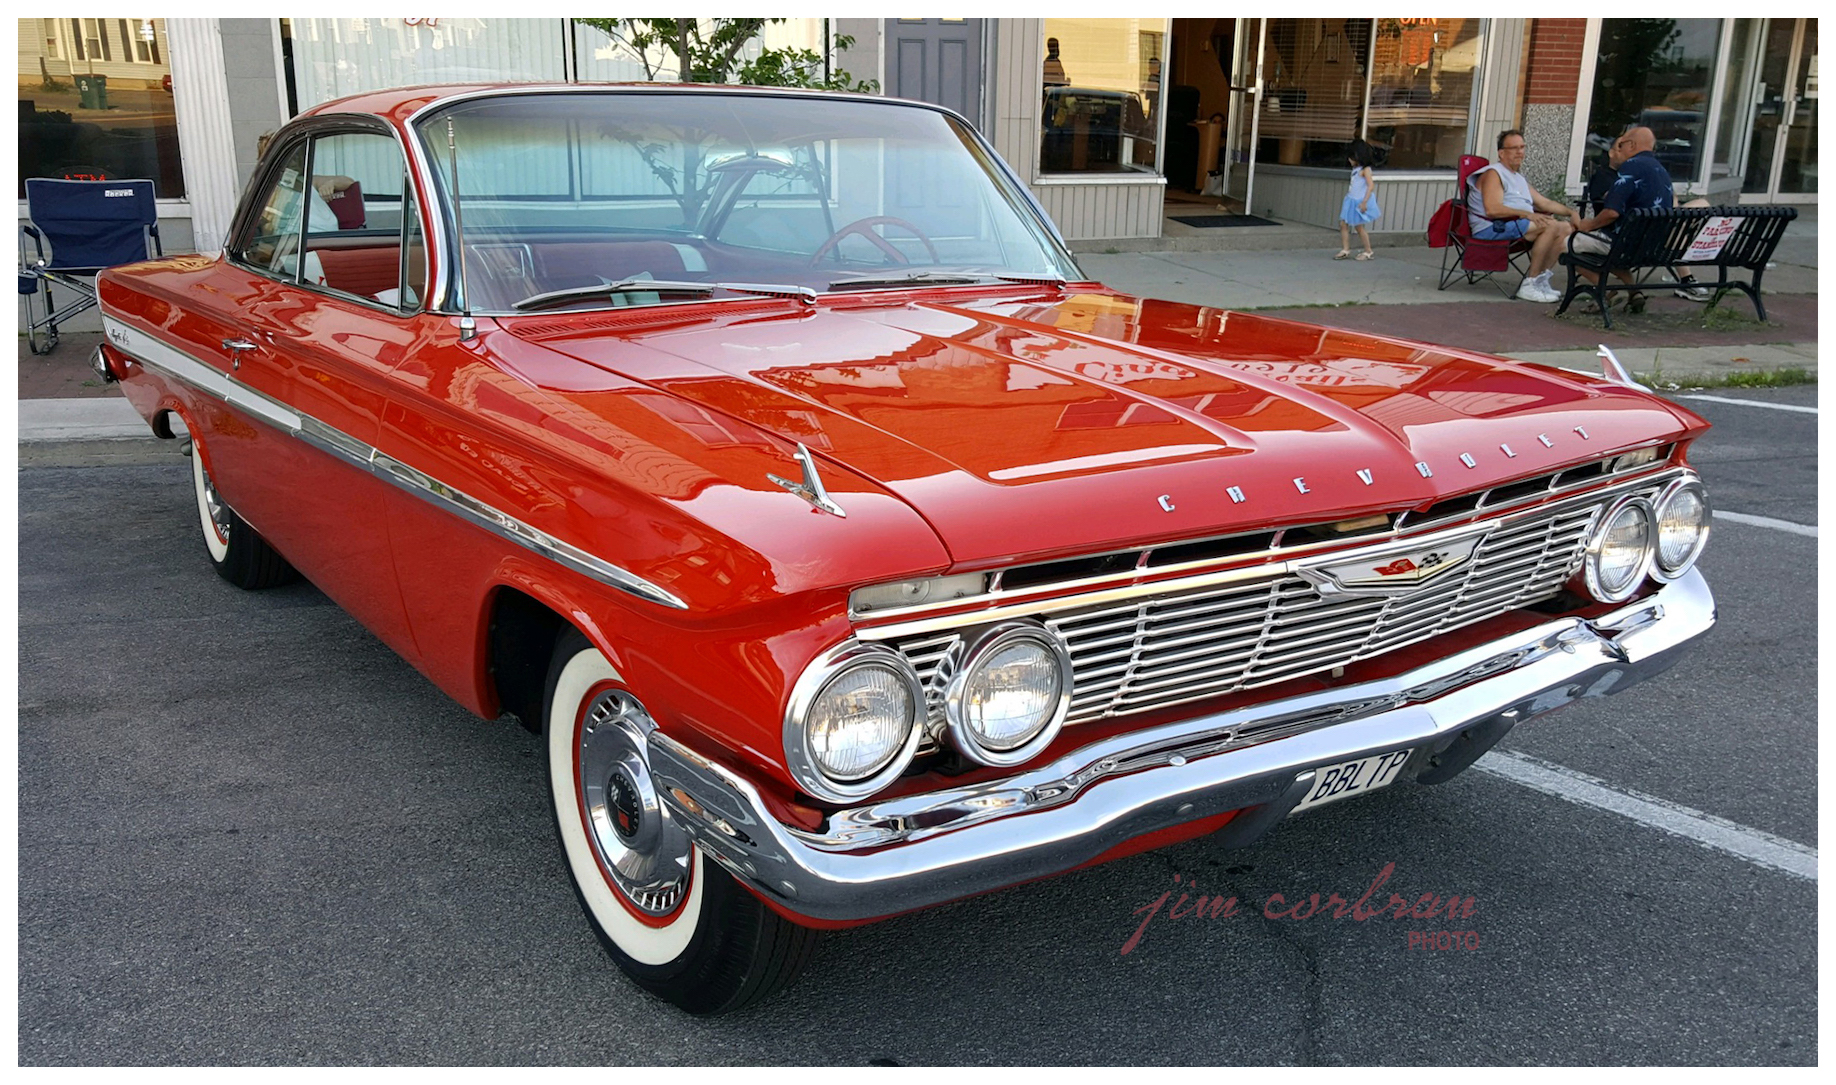 Realrides Of Wny 1961 Chevrolet Impala Chevy Ss Some Call This Style Sport Coupe A Bubbletop Due To Its Rakish Airy Roofline See An Actual Below Ed Big Daddy Roths